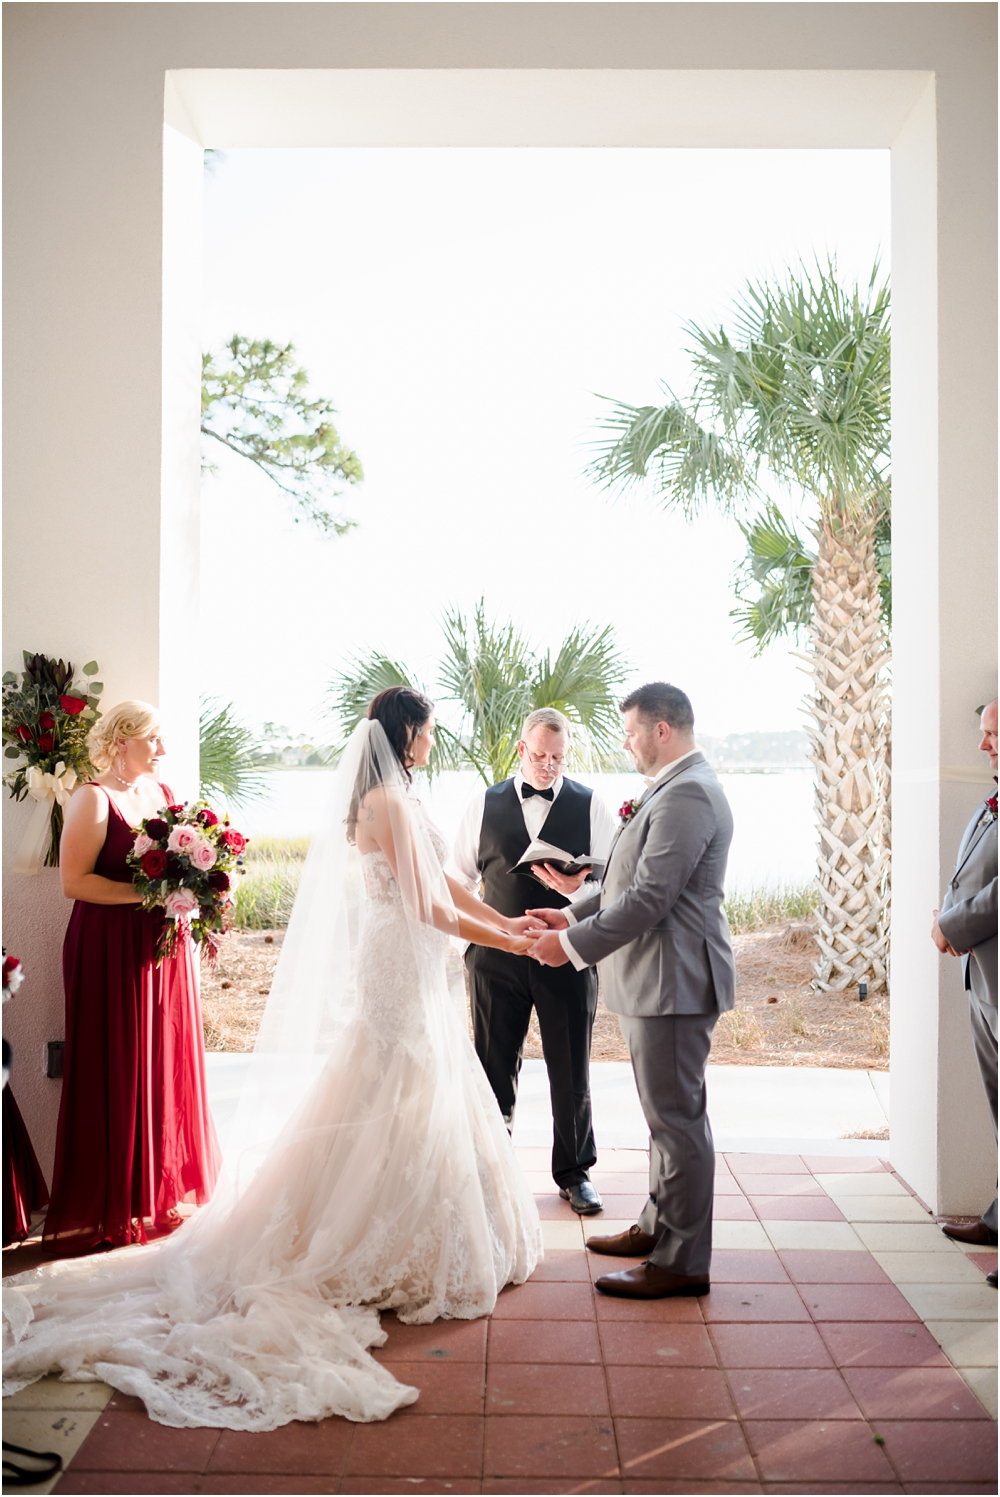 imhof-sheraton-panama-city-beach-florida-wedding-photographer-kiersten-grant-88.jpg